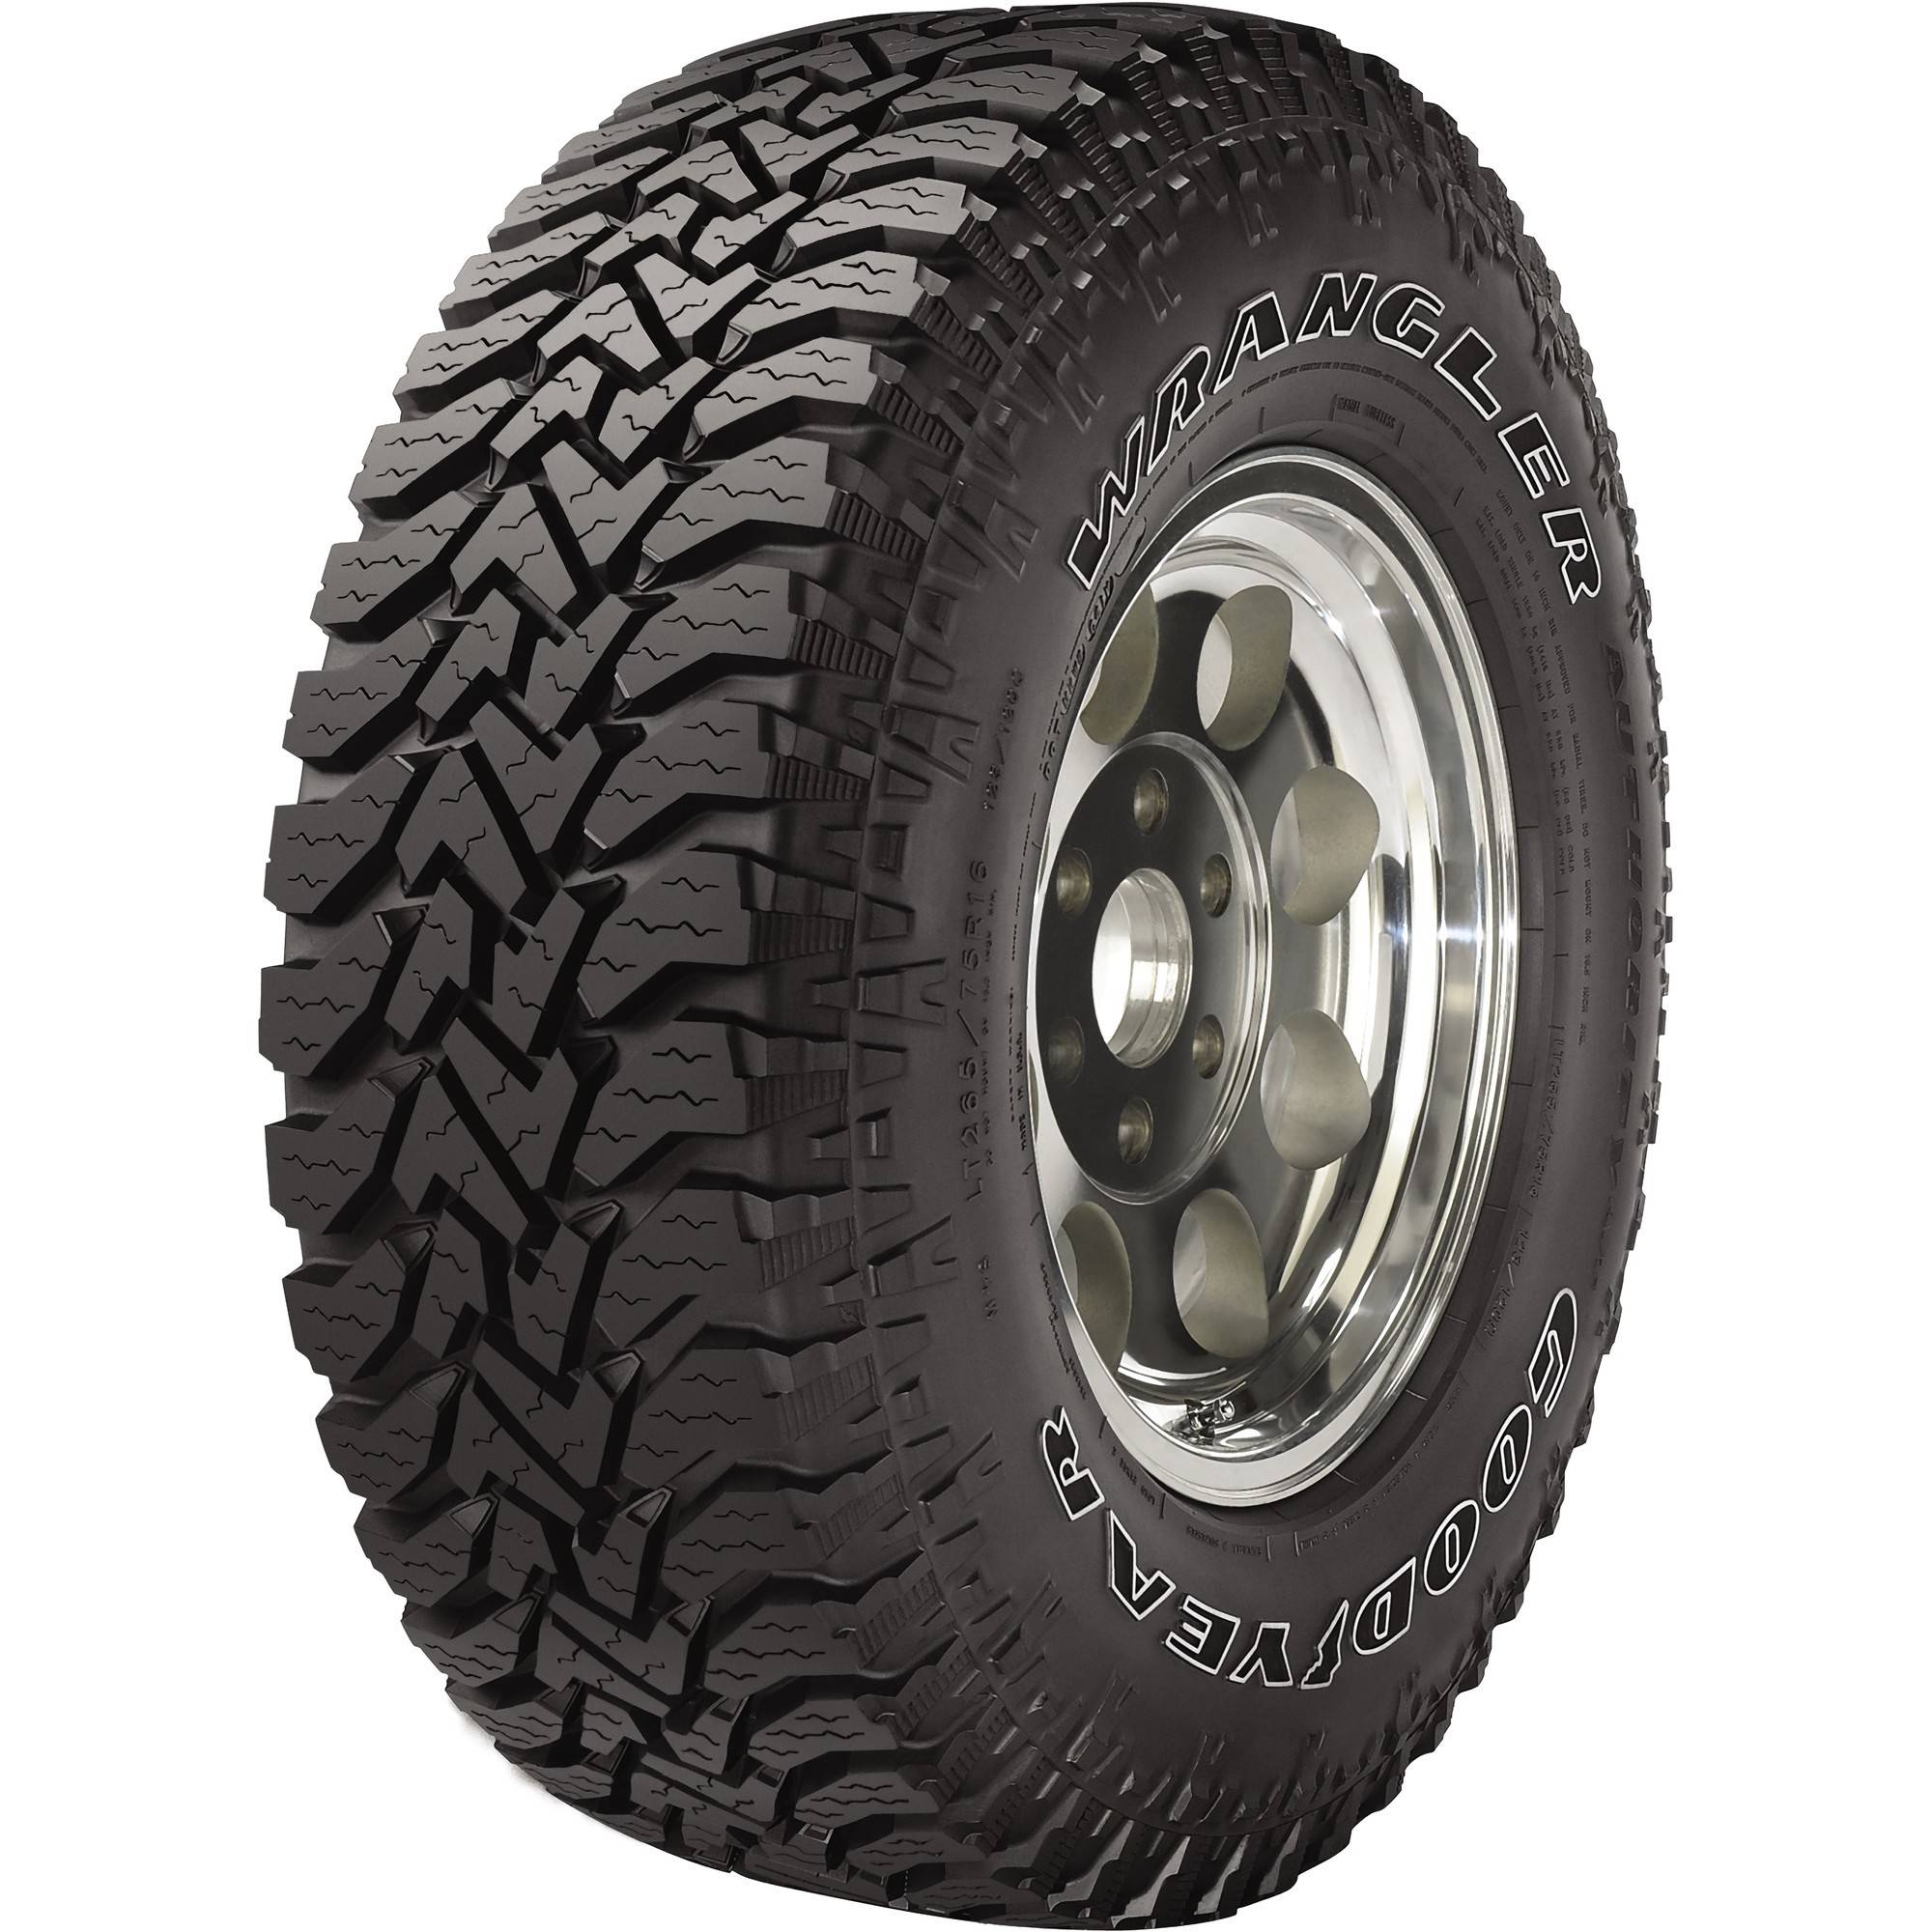 Goodyear Wrangler Authority Tire 31X10.50R15 LT